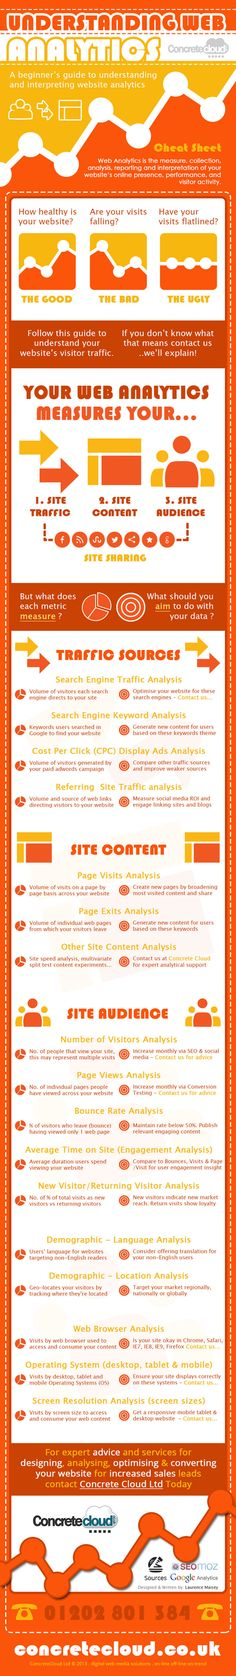 Infographic: Web Analytics - Analysing and Understanding web analytics for beginners | A cheat sheet for new and advanced web analysts. Google Analytics Infographic.